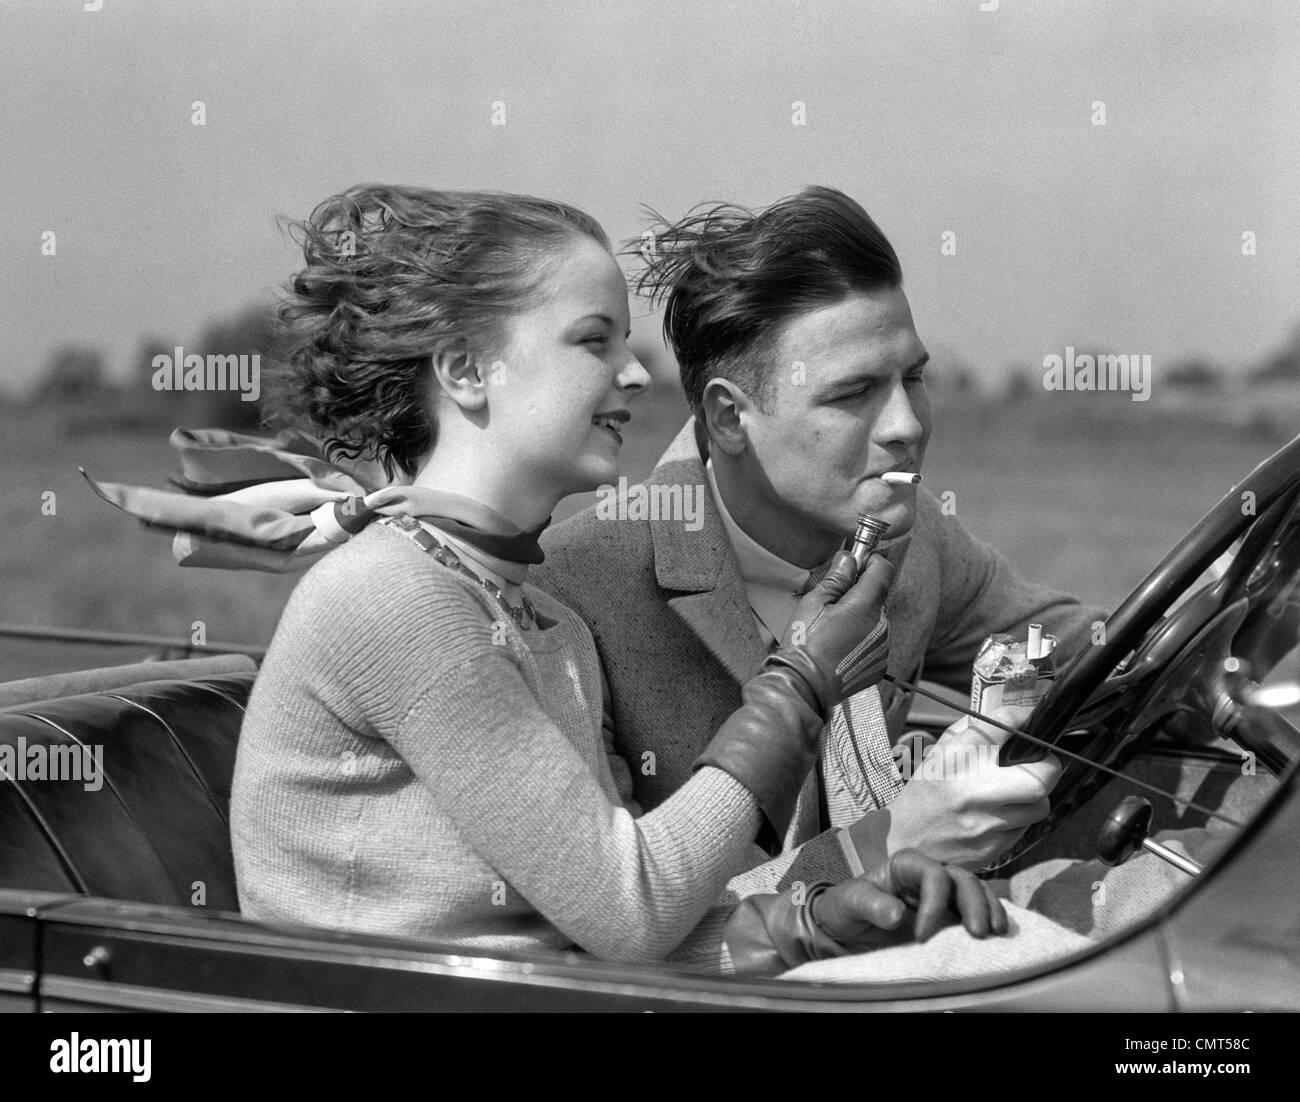 1930s MAN DRIVING CONVERTIBLE AUTOMOBILE WHILE GIRLFRIEND LIGHTS HIS CIGARETTE - Stock Image